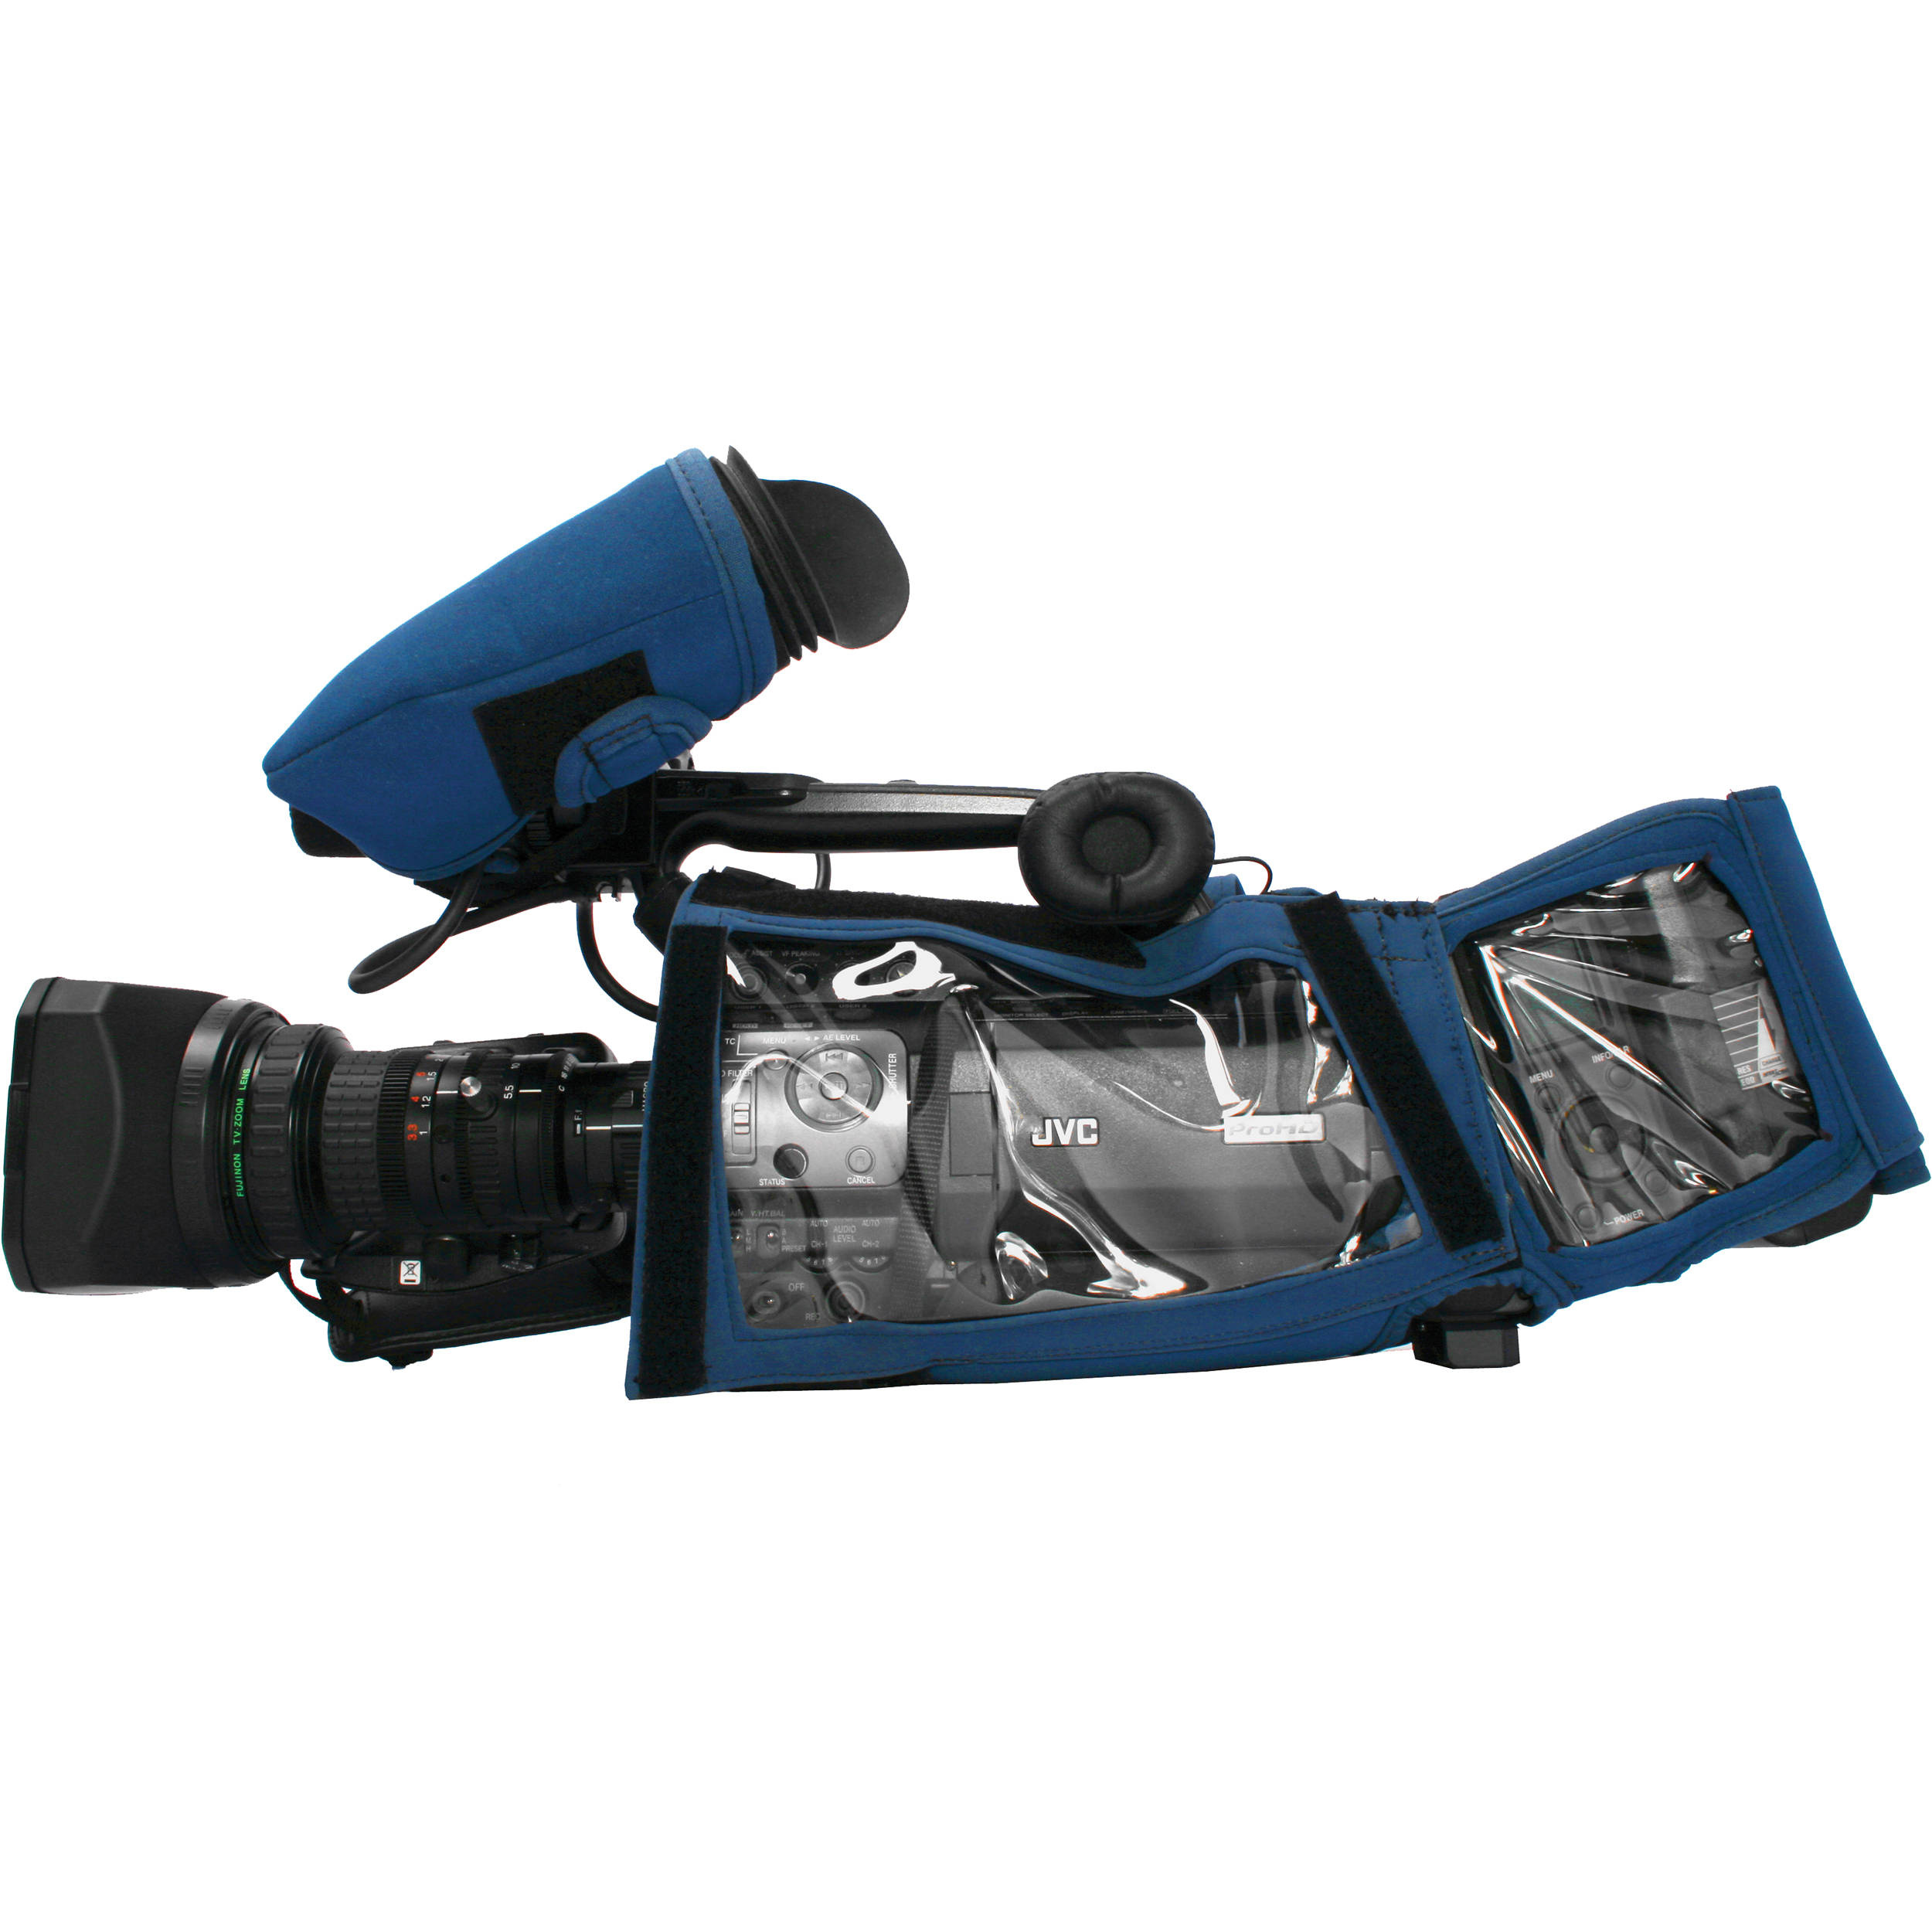 Camera Body Armor for JVC GY-HM850 Camcorder (Blue)